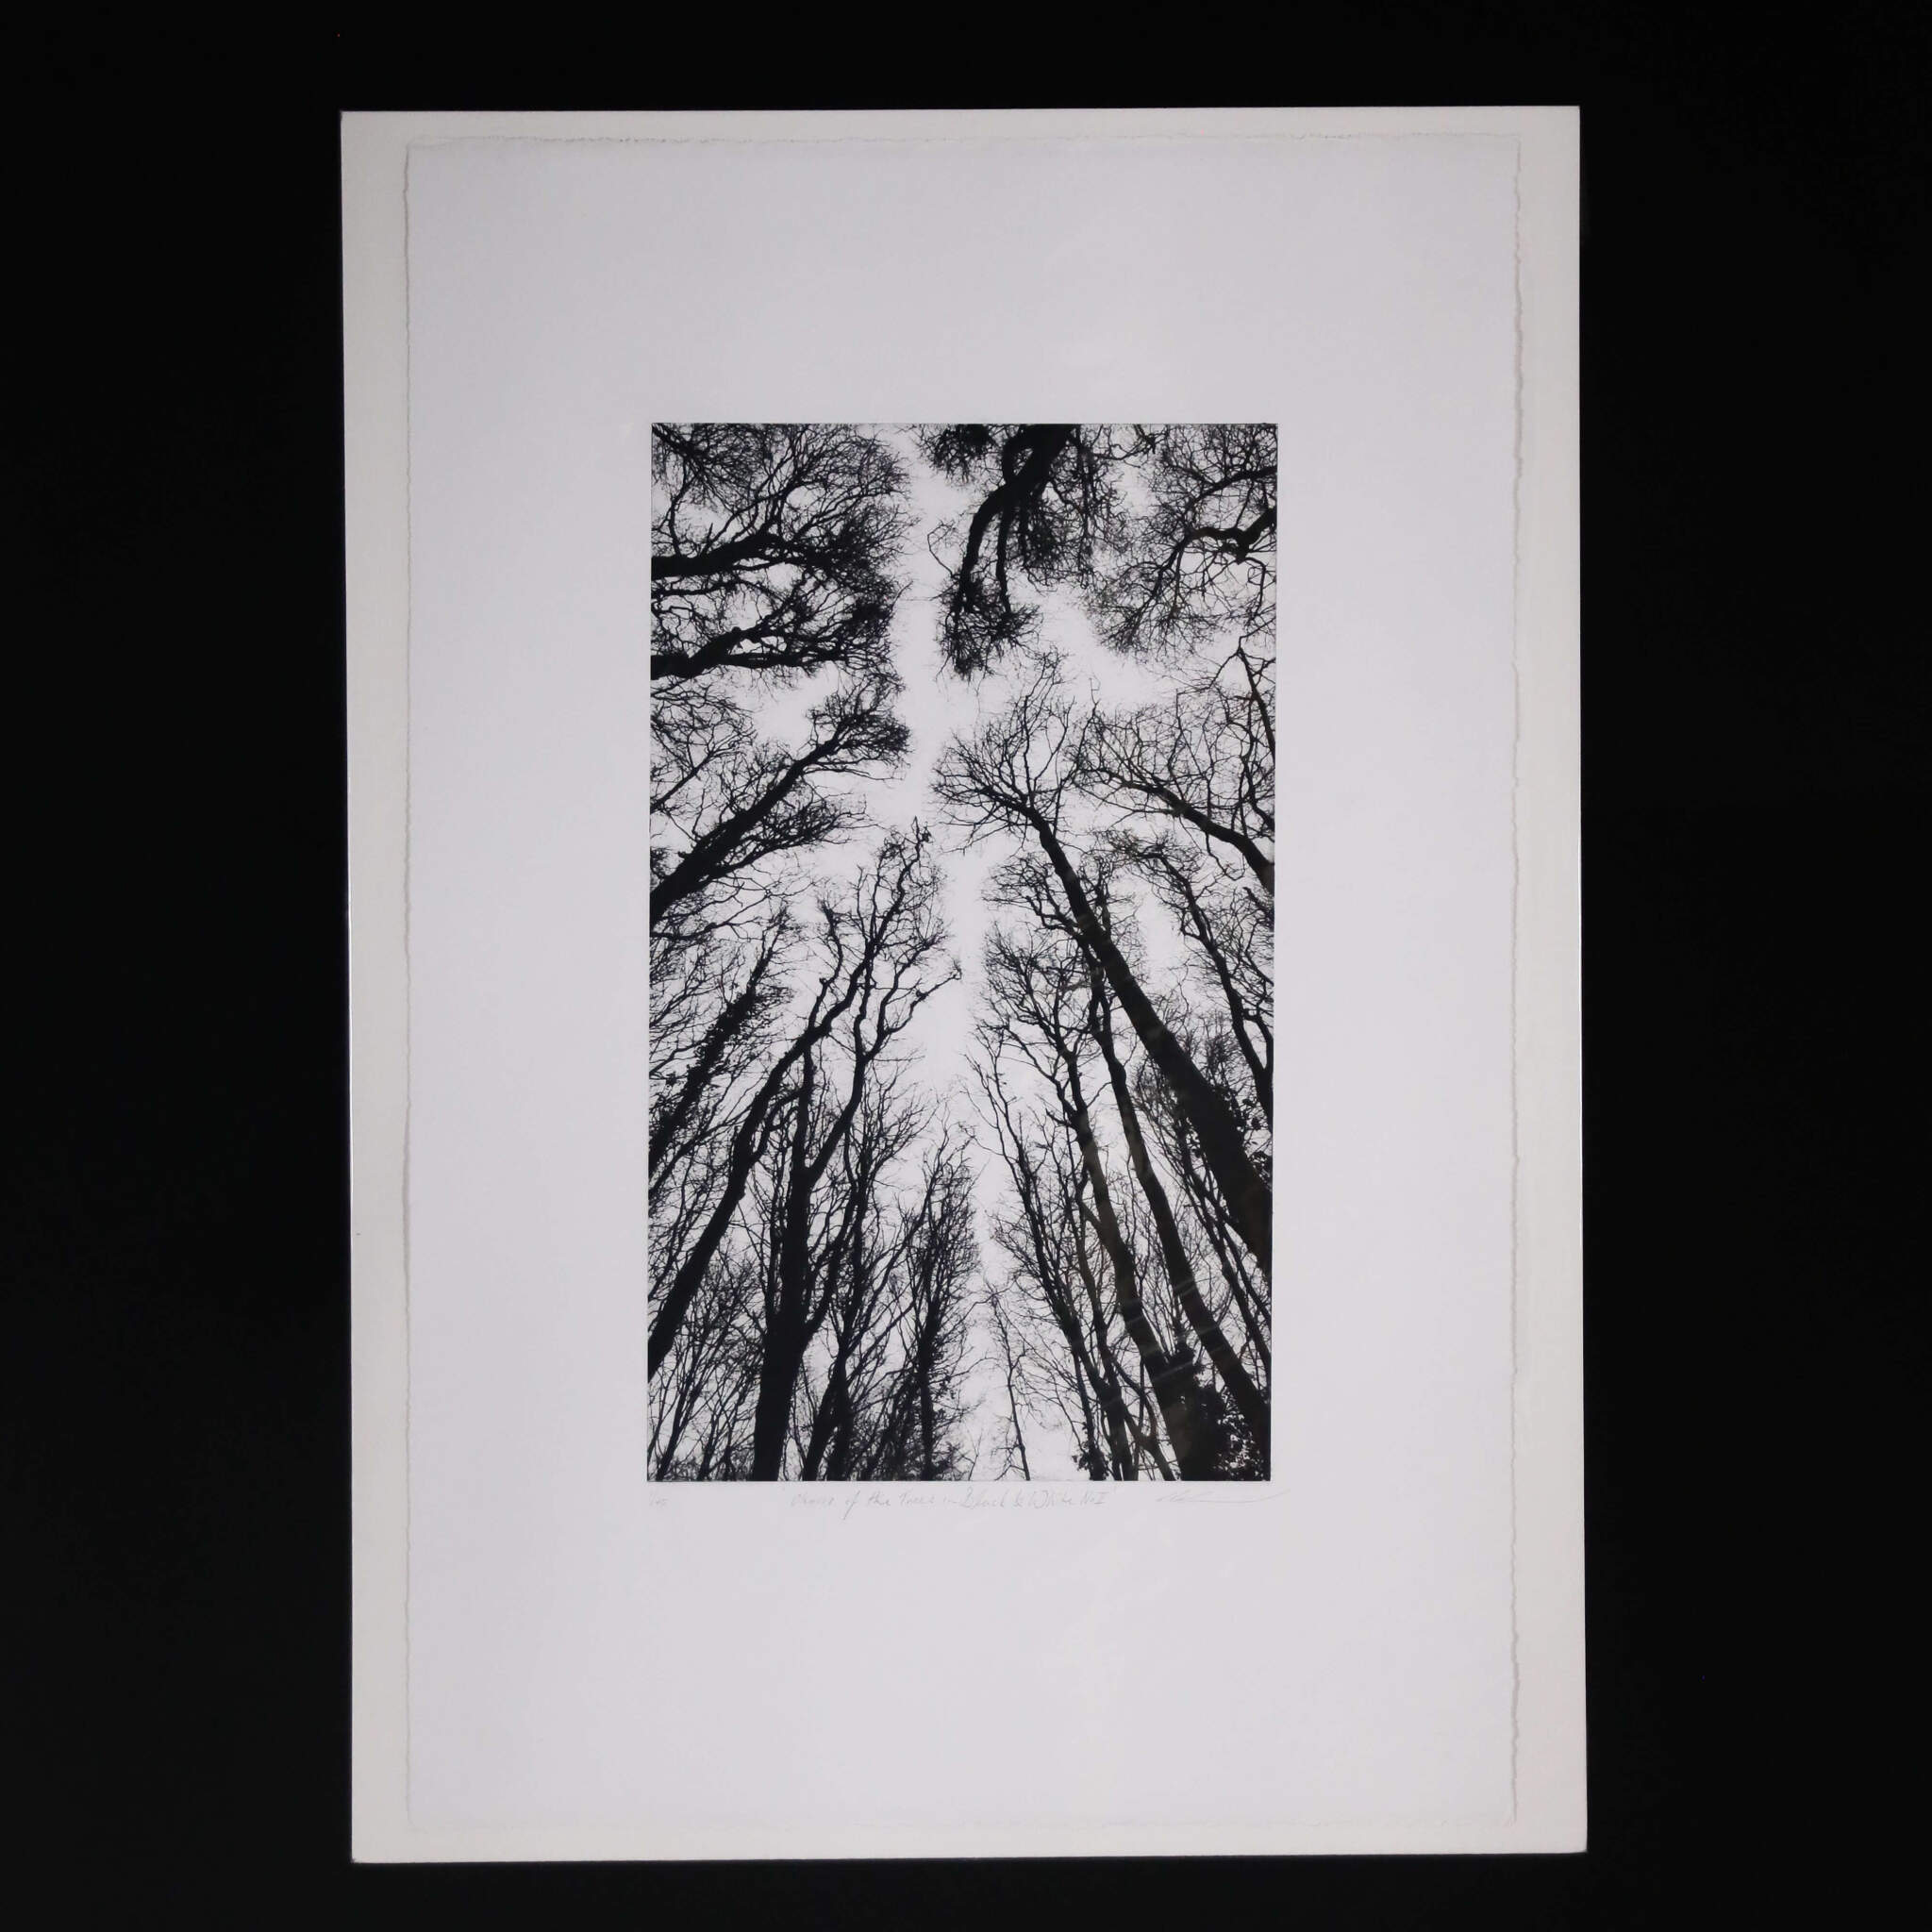 N58A3006 - Chorus of the Trees in Black and White II by Clare Grossman